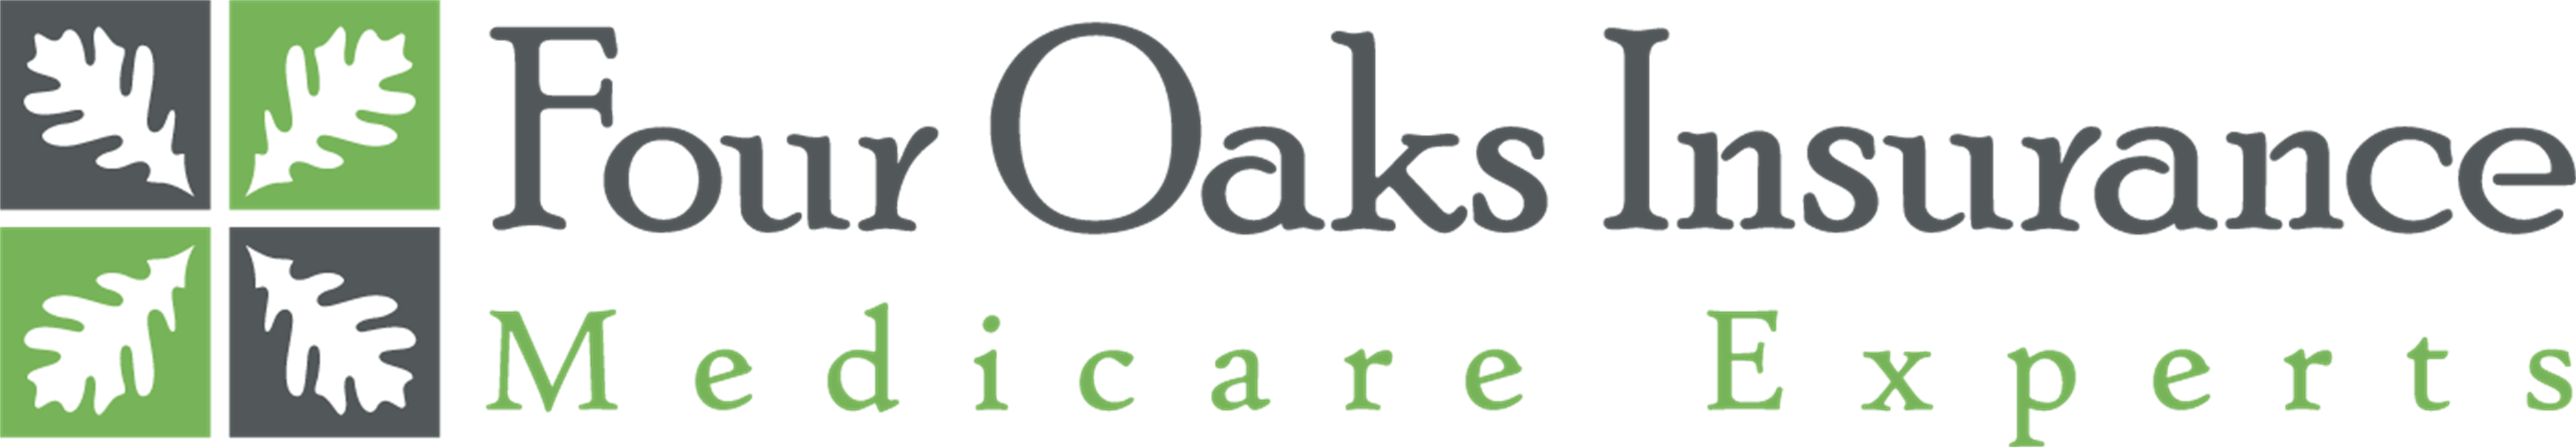 Four Oaks Medicare/Life Insurance